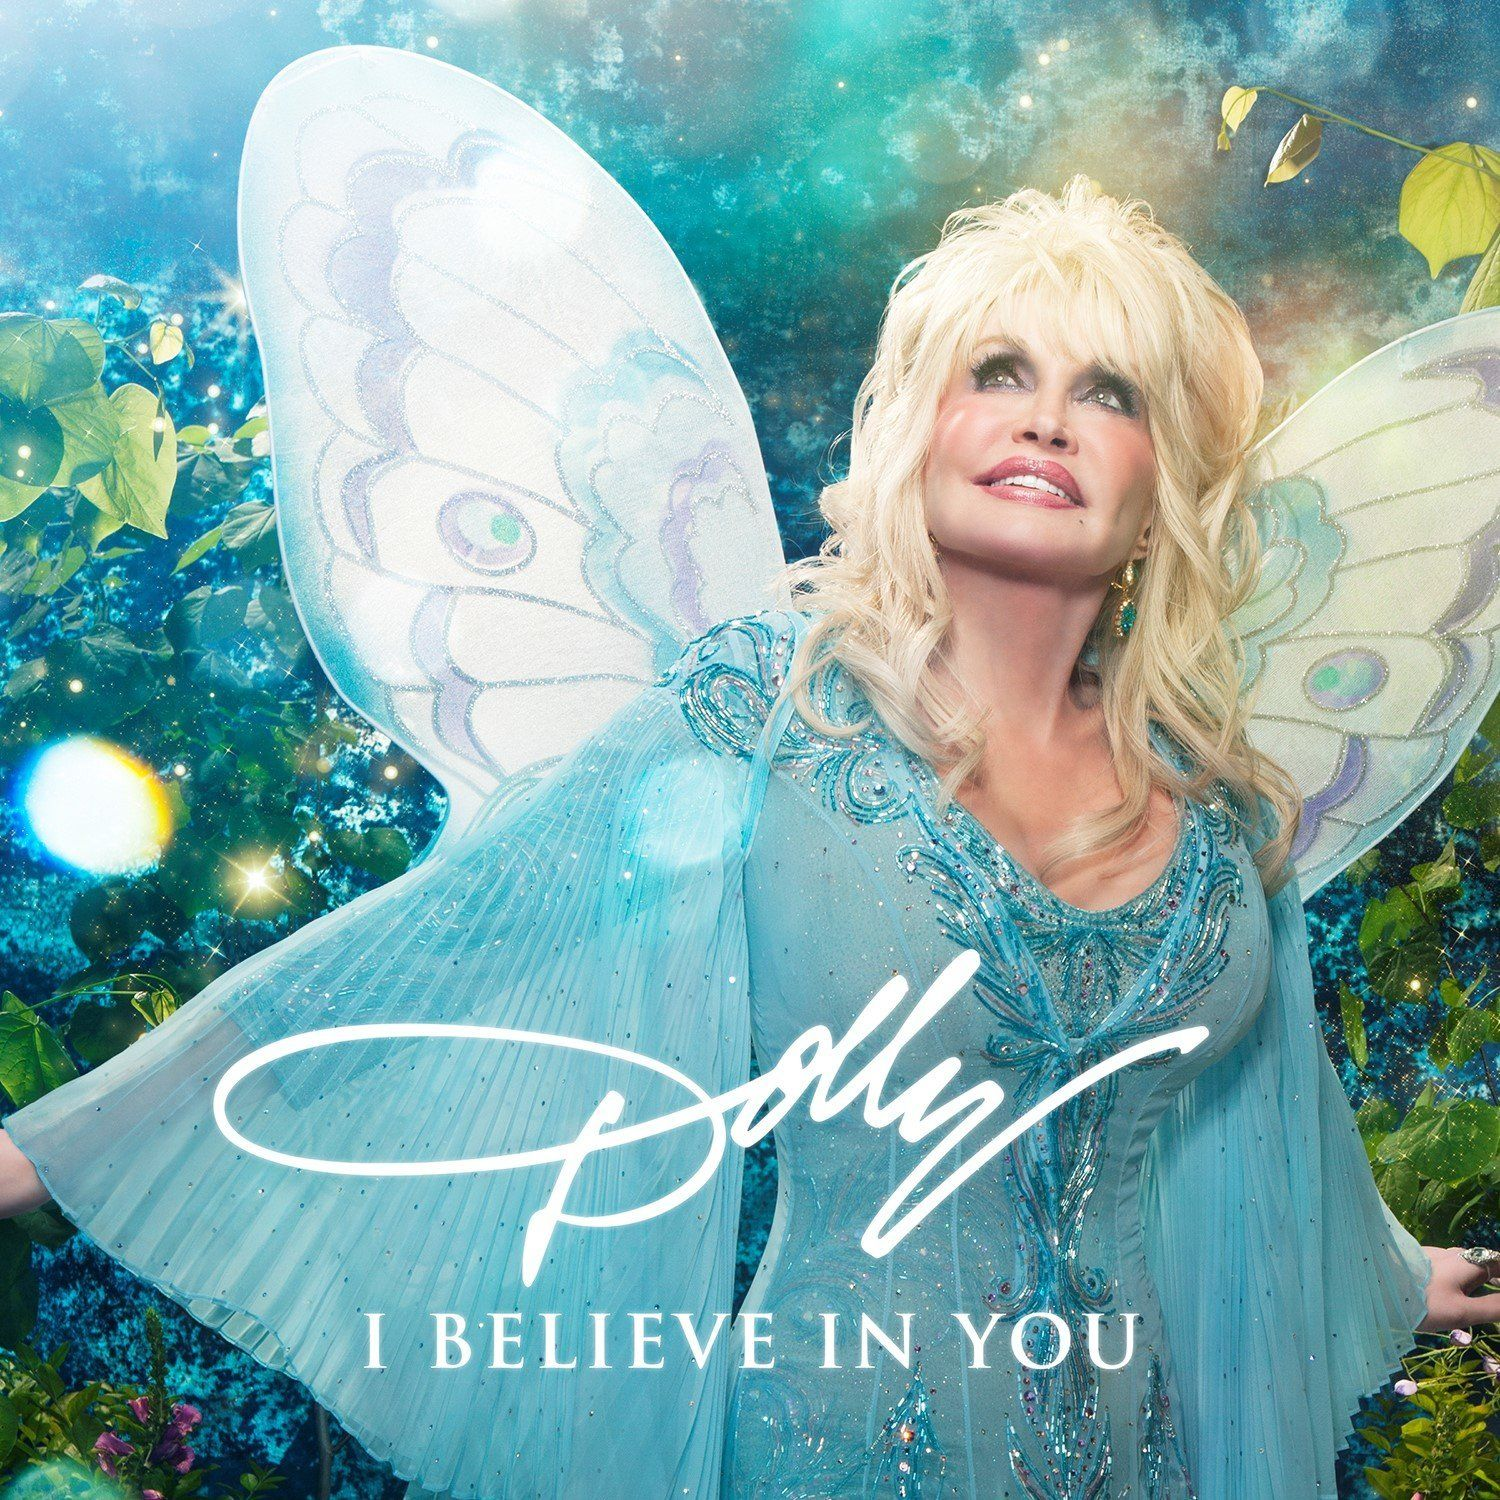 Dolly Parton to produce first children's album